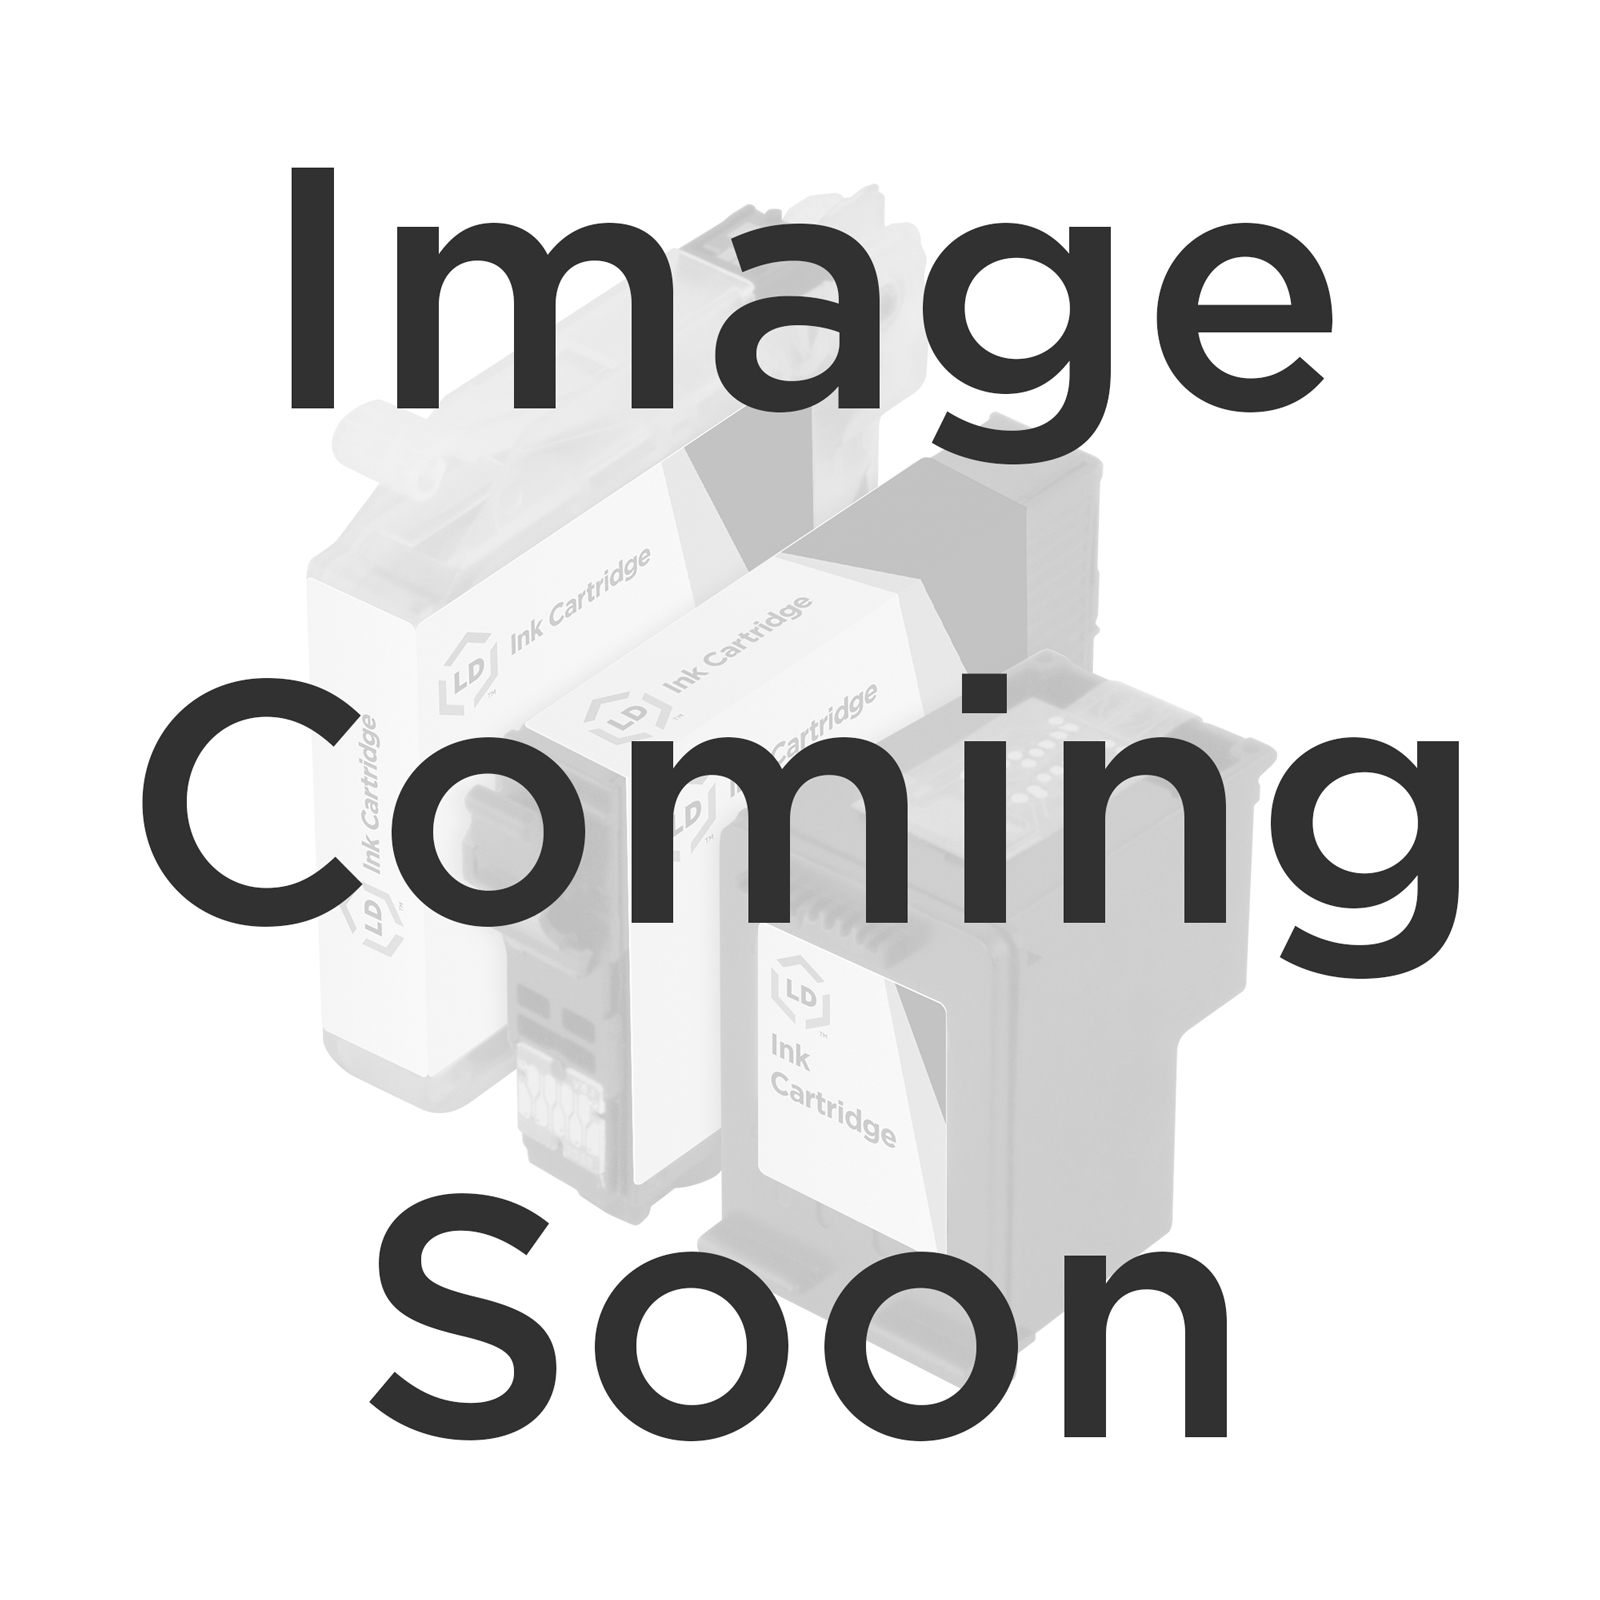 Carson-Dellosa Grade 3 Applying the Standards STEM Workbk Education Printed Book for Science